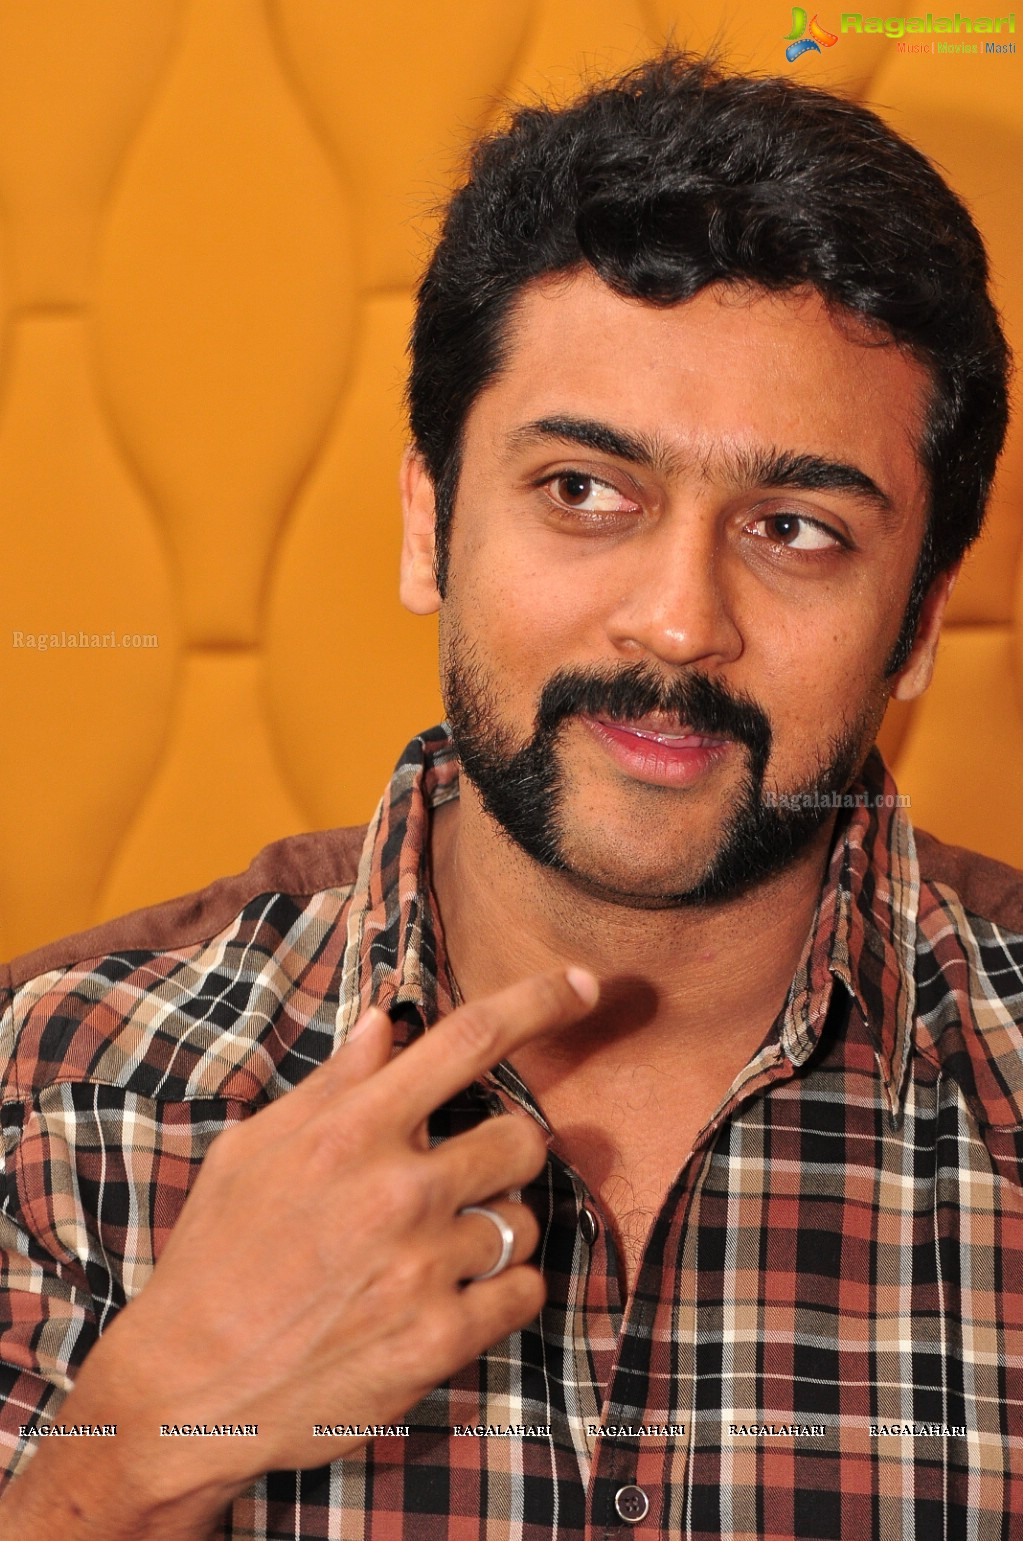 Surya image 29 tollywood heroines postersimages photos pictures surya image 29 tollywood heroines postersimages photos pictures hd wallpapers thecheapjerseys Images